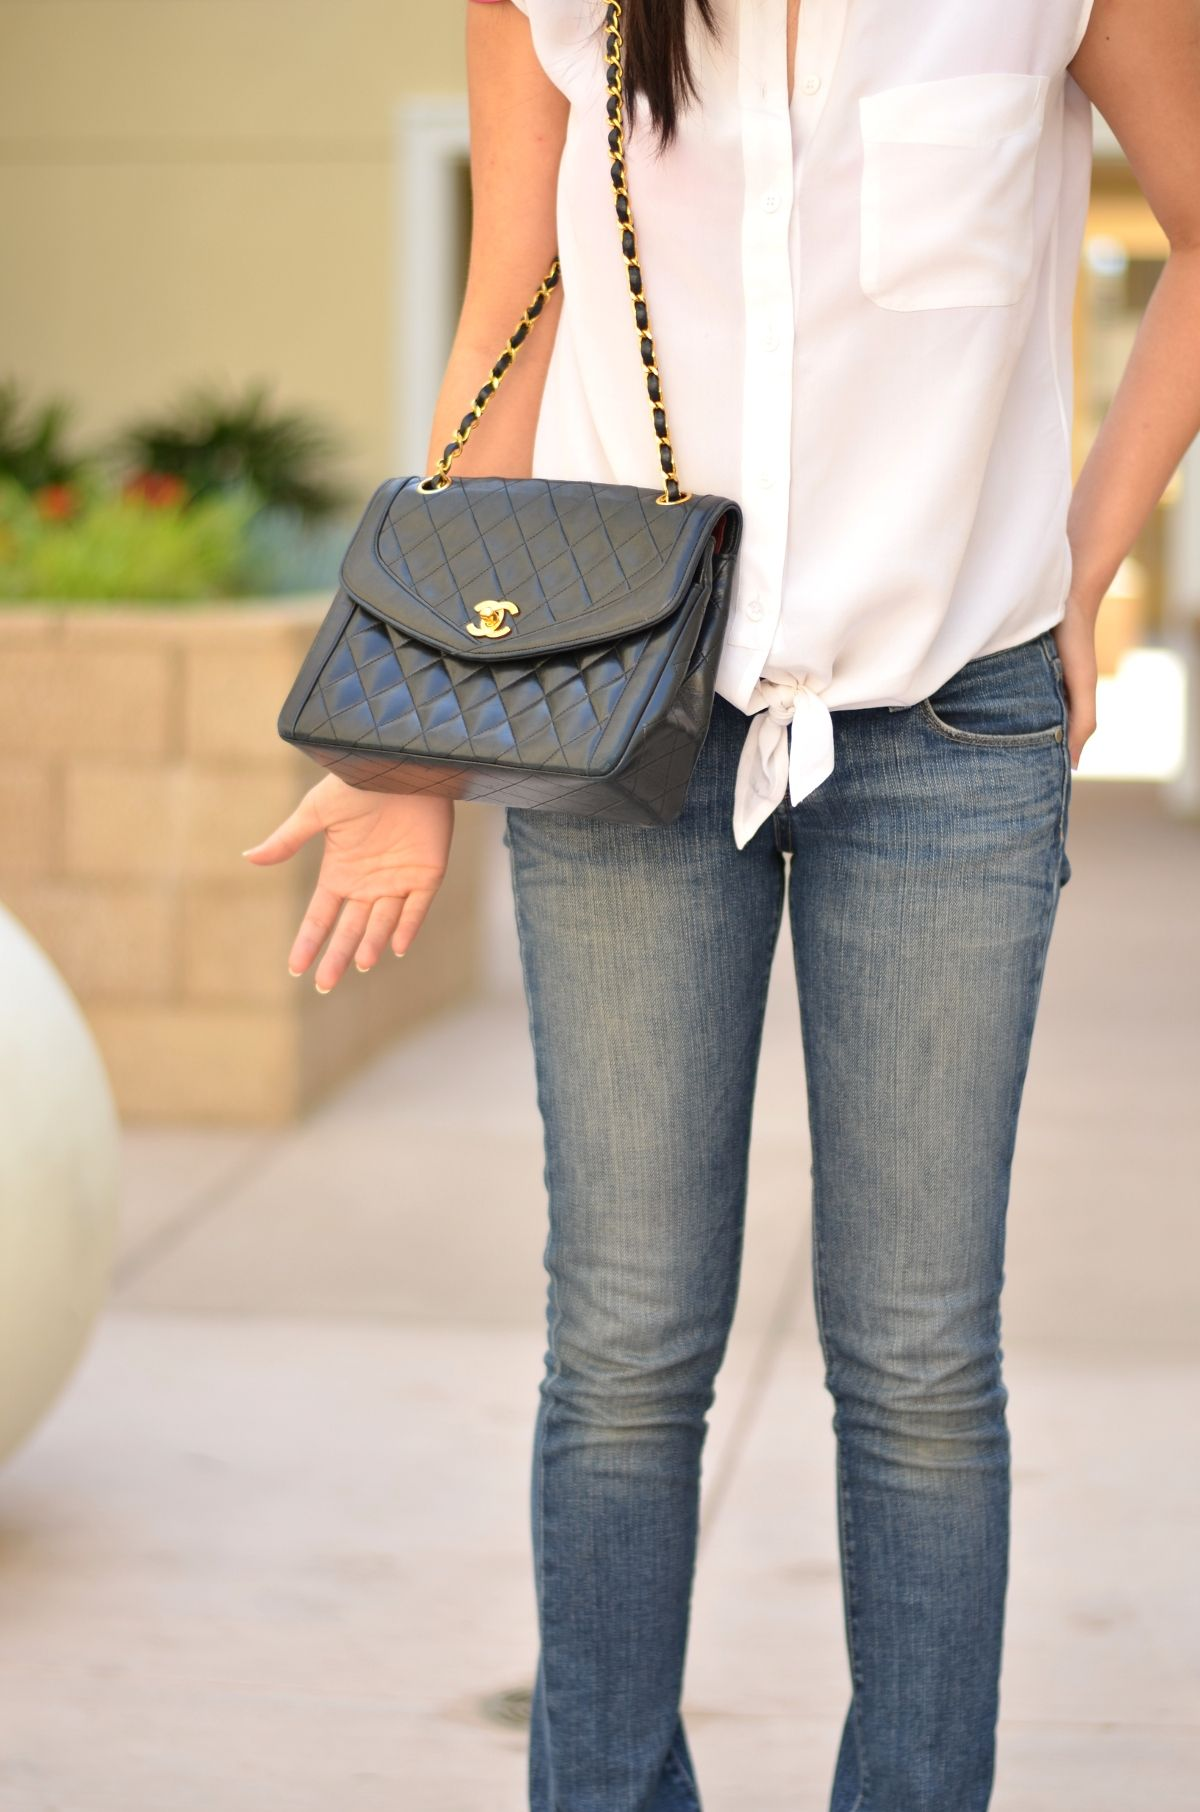 Classic black quilted Chanel lambskin bag Chanel flap